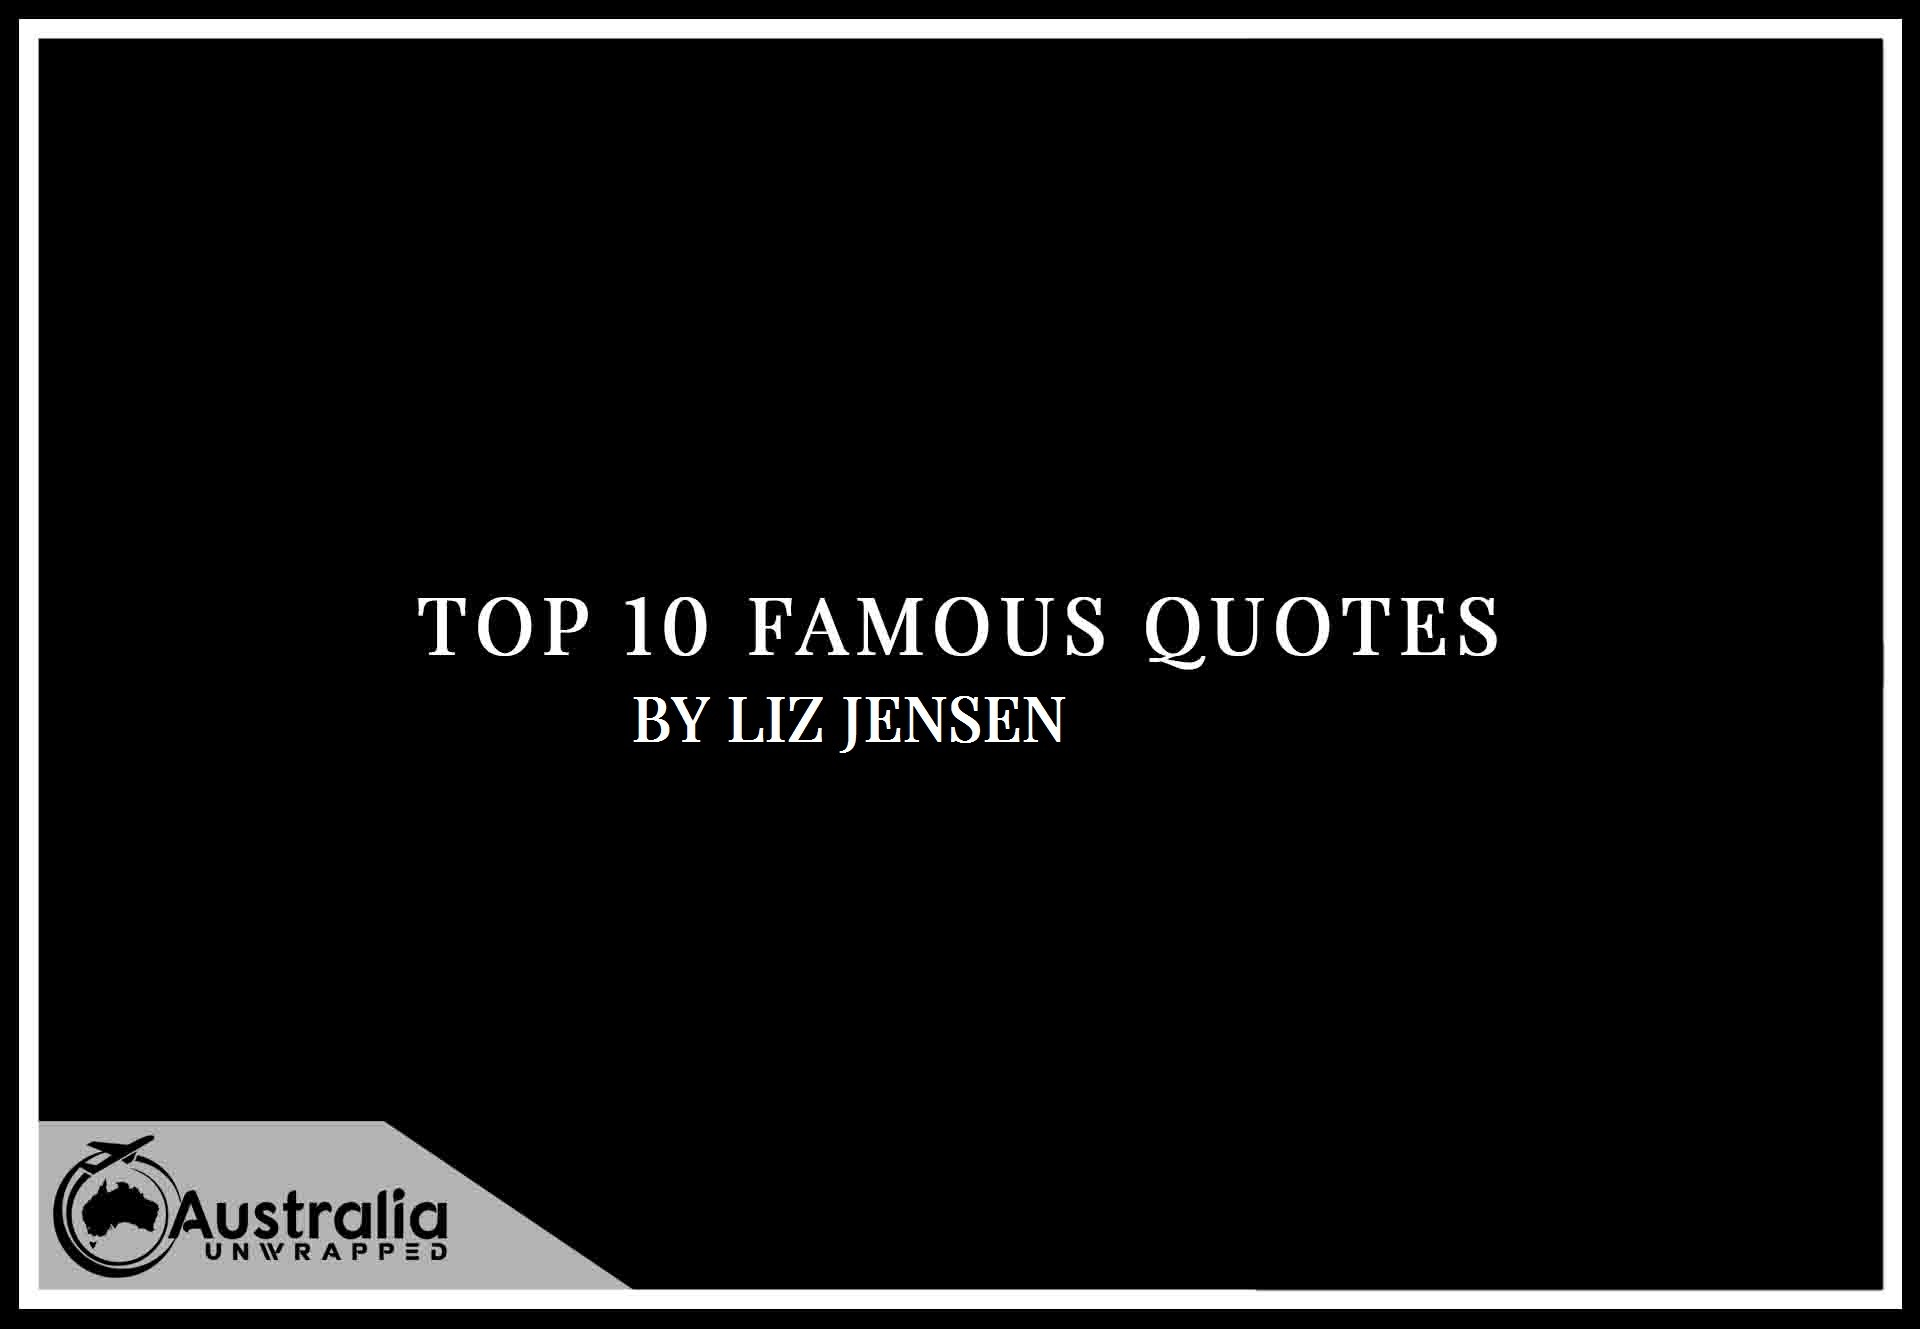 Liz Jensen's Top 10 Popular and Famous Quotes